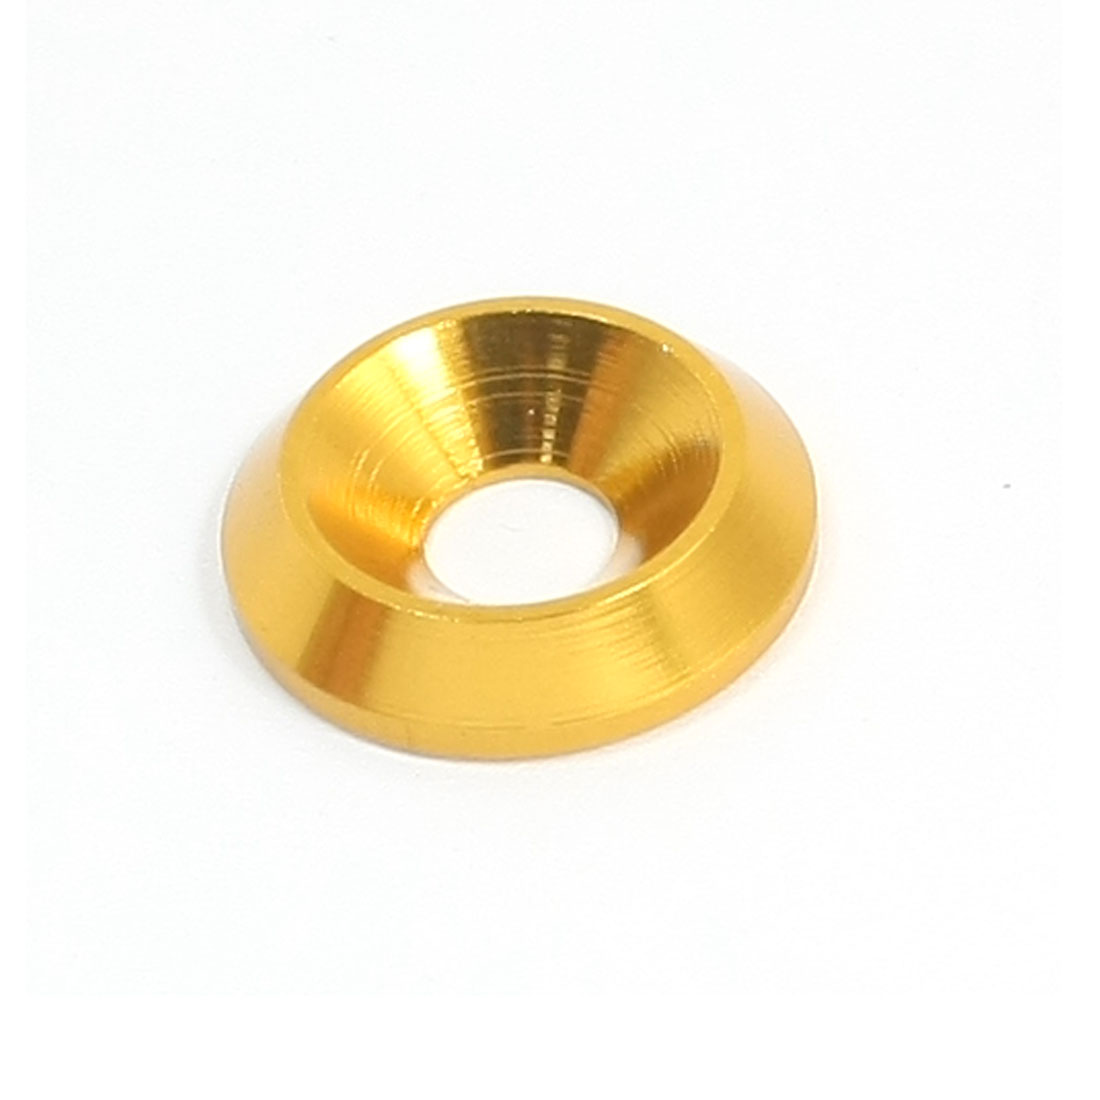 5mm x 16mm x 3.5mm Gold Tone Aluminium Alloy Spacer Washer for RC Model